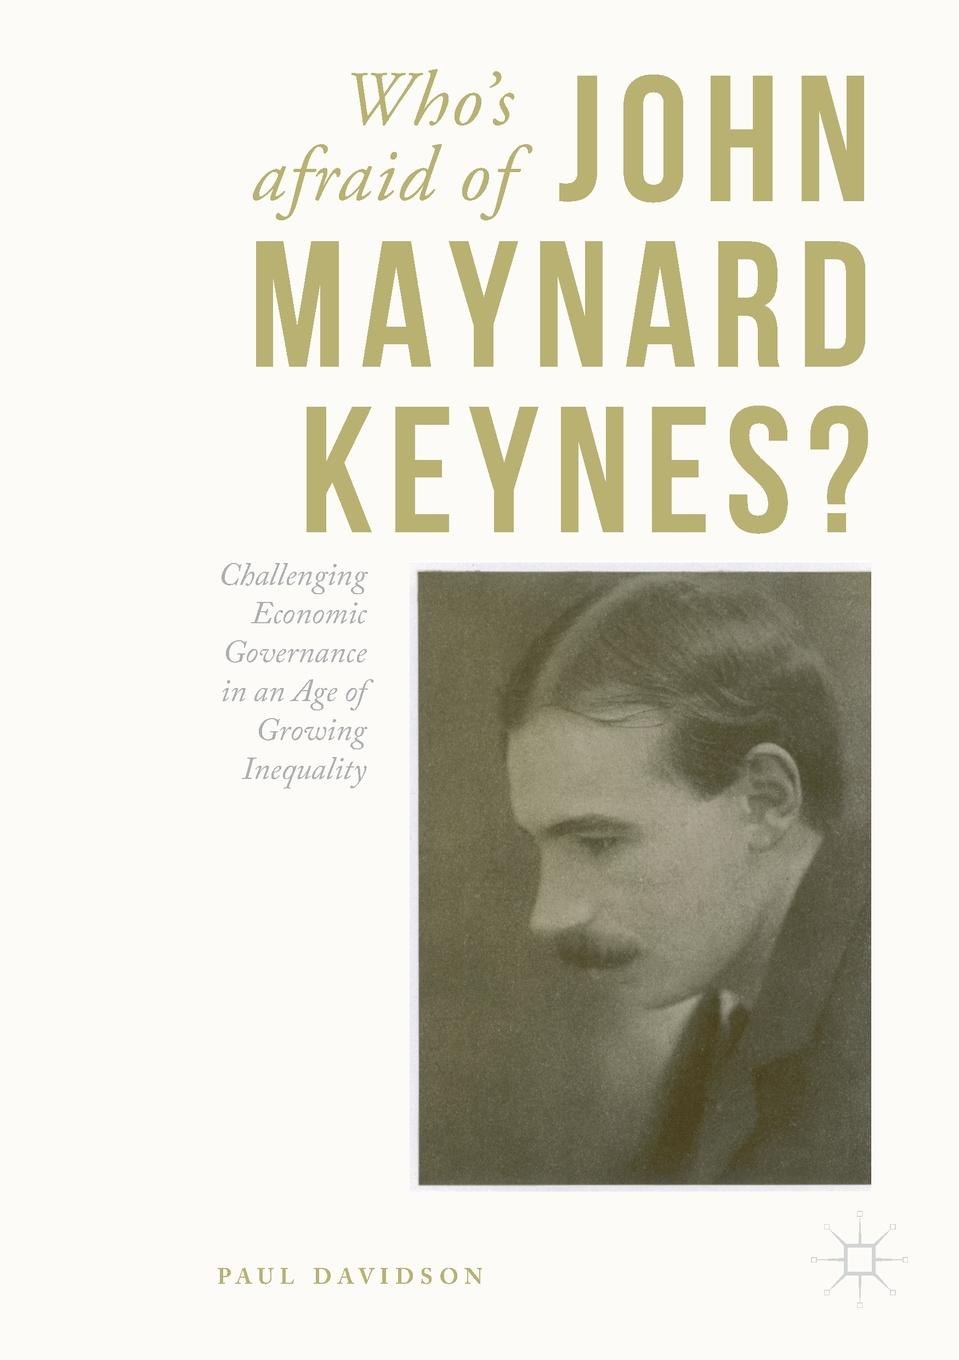 Paul Davidson Who's Afraid of John Maynard Keynes?. Challenging Economic Governance in an Age of Growing Inequality lina laubisch debate about alternative monetary systems silvio gesell john maynard keynes irving fisher